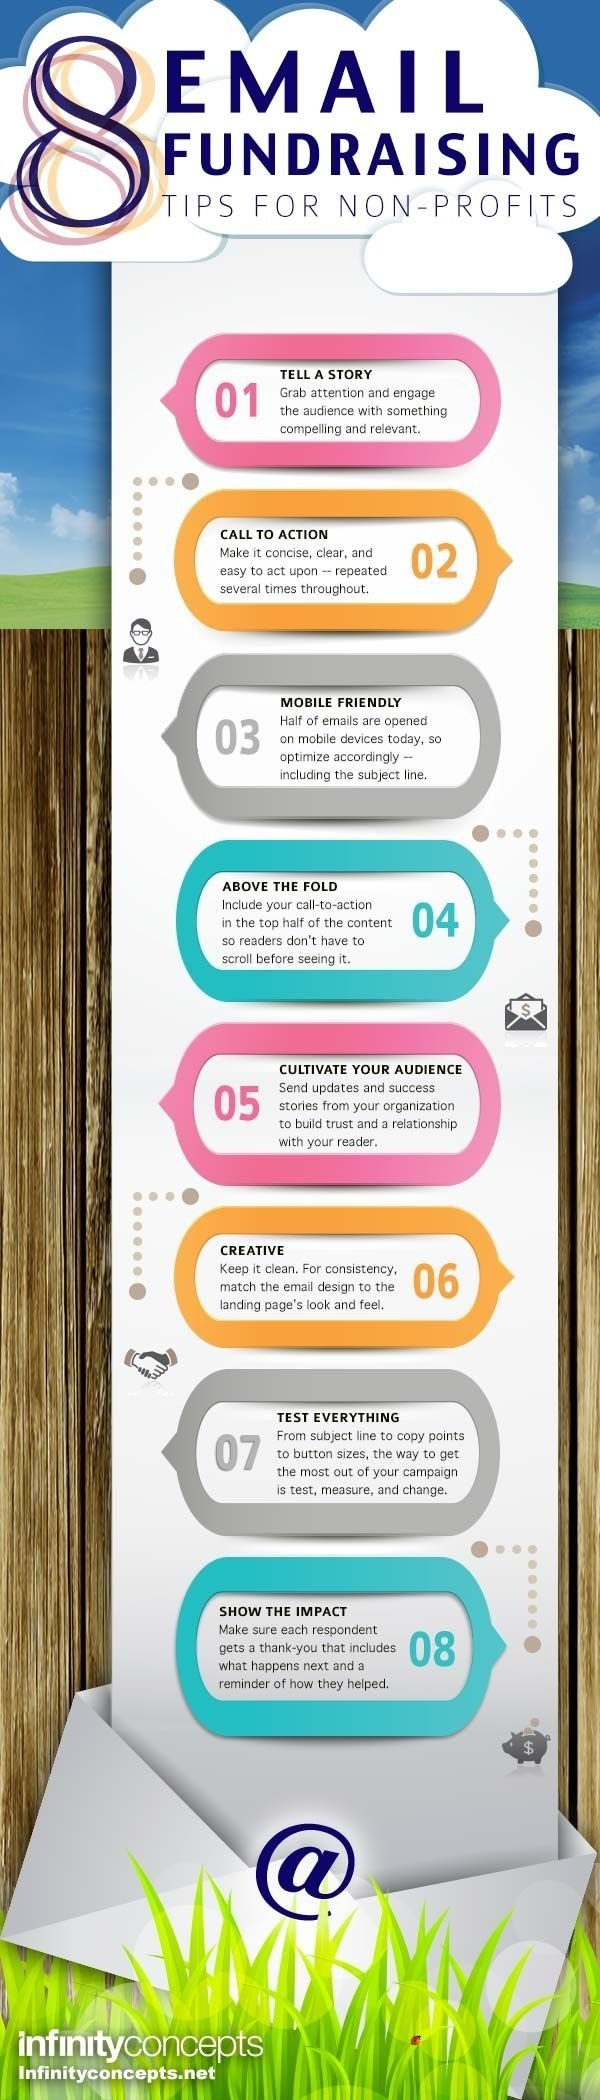 10 Attractive Fun Fundraising Ideas For Work 30 best fundraising ideas images on pinterest fundraising ideas 4